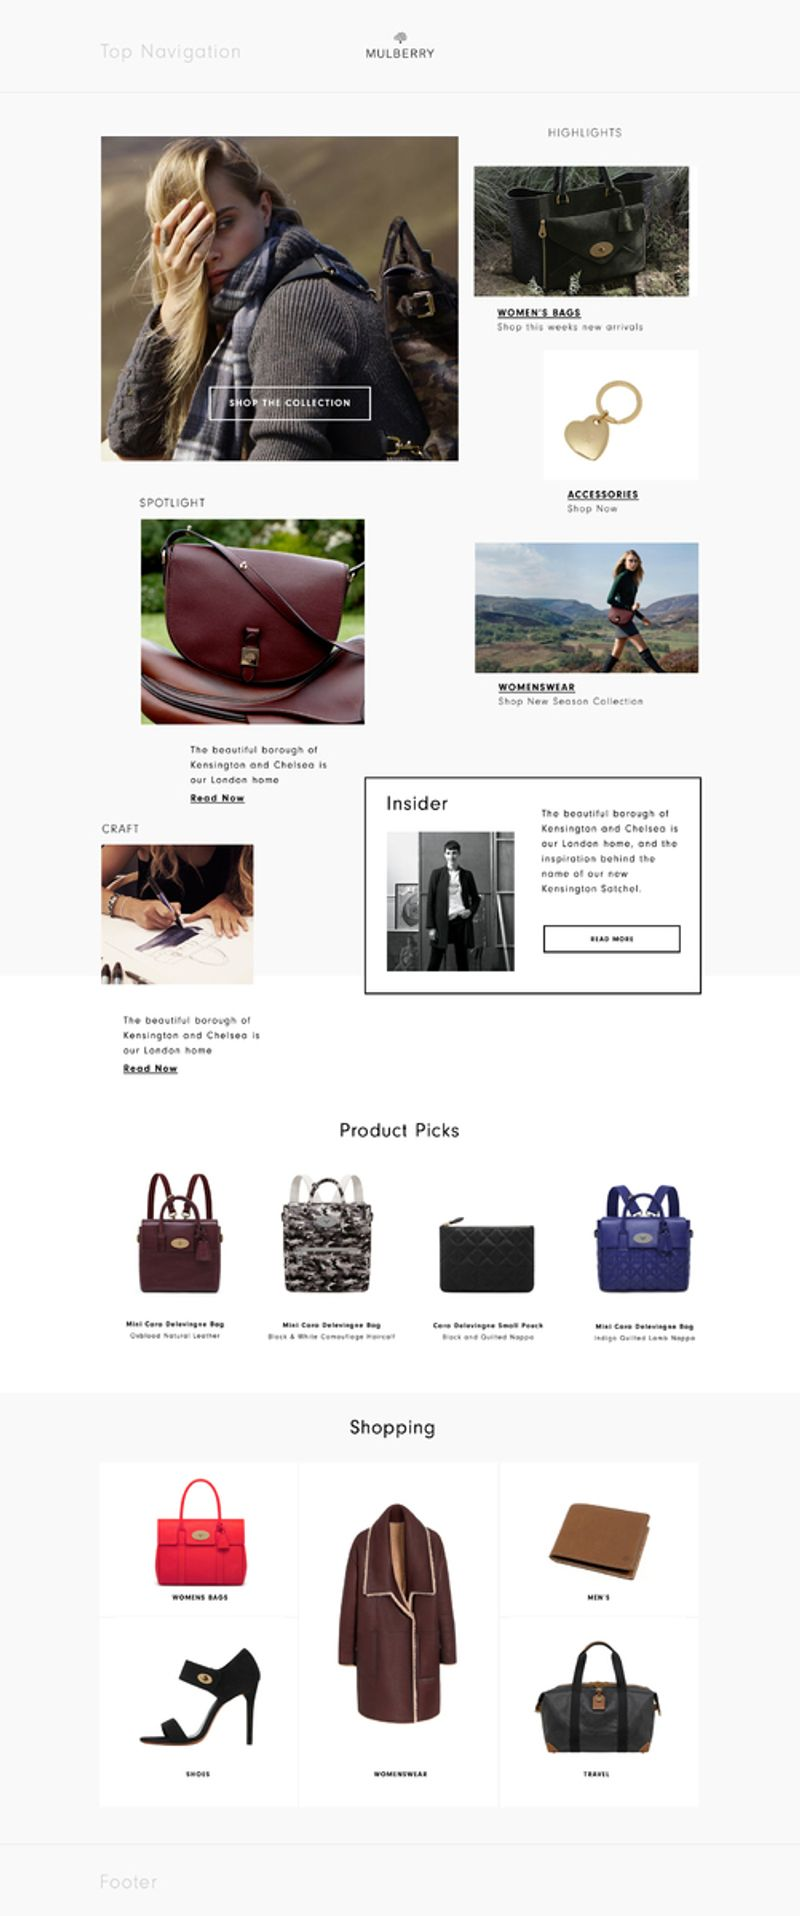 Mulberry: homepage and product page concepts